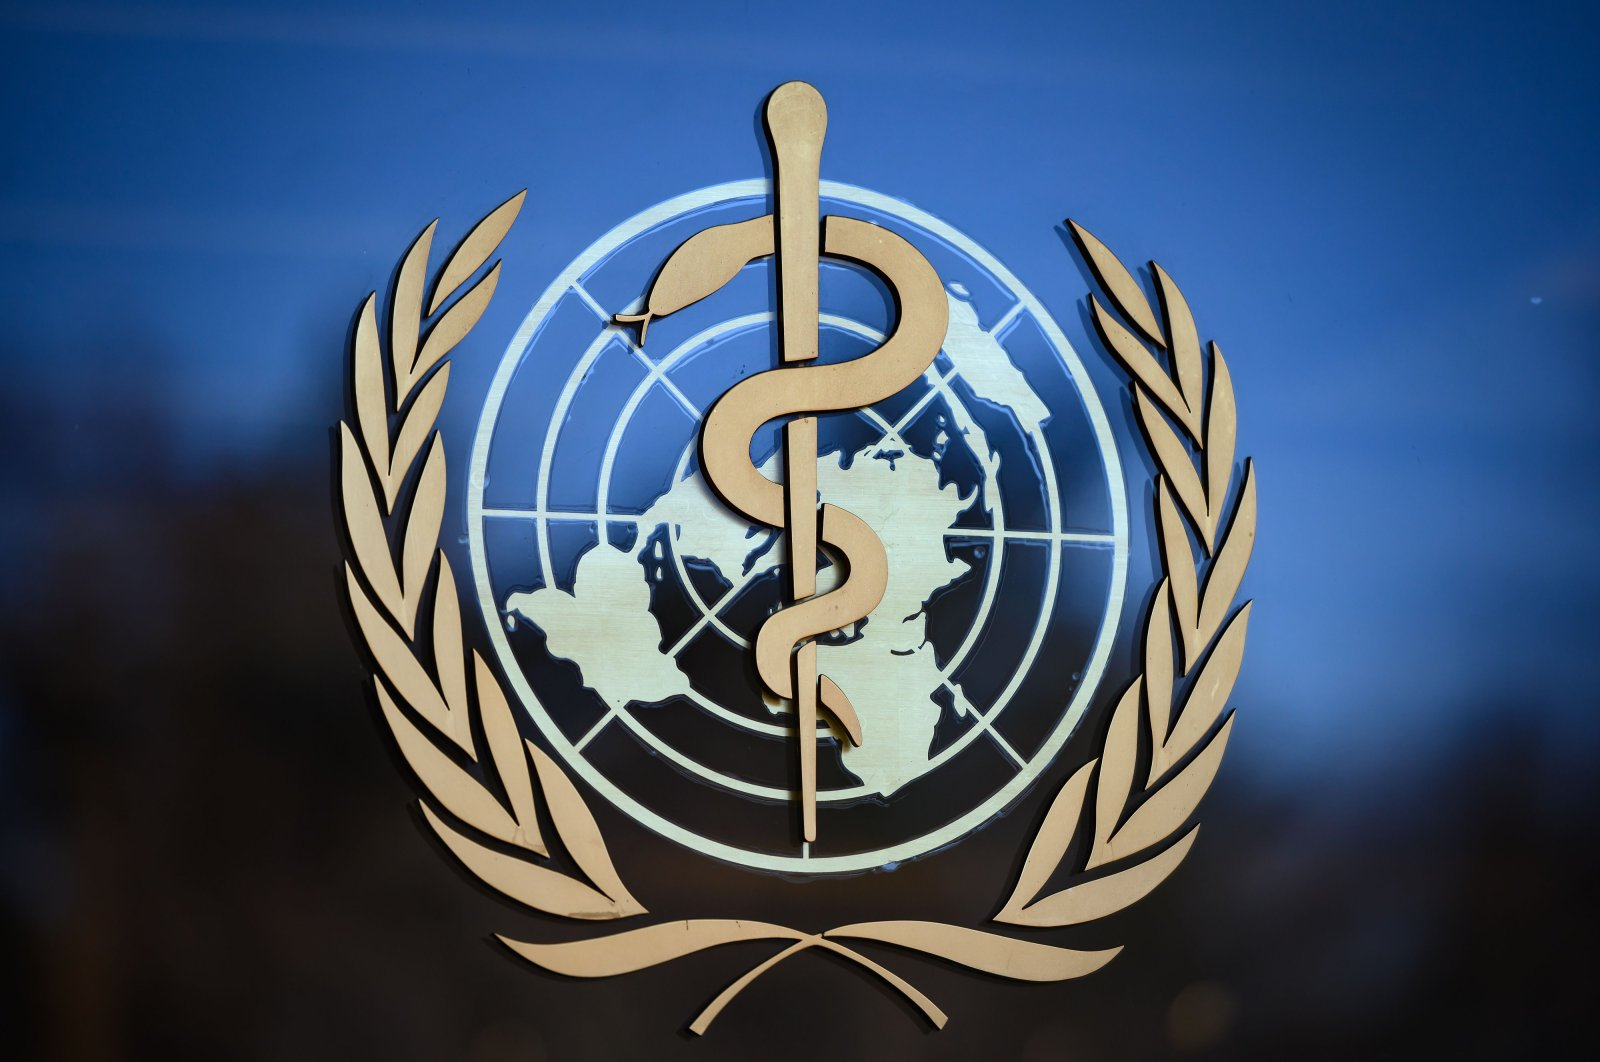 The logo of the World Health Organization (WHO) on display at its headquarters in Geneva. (AFP Photo)